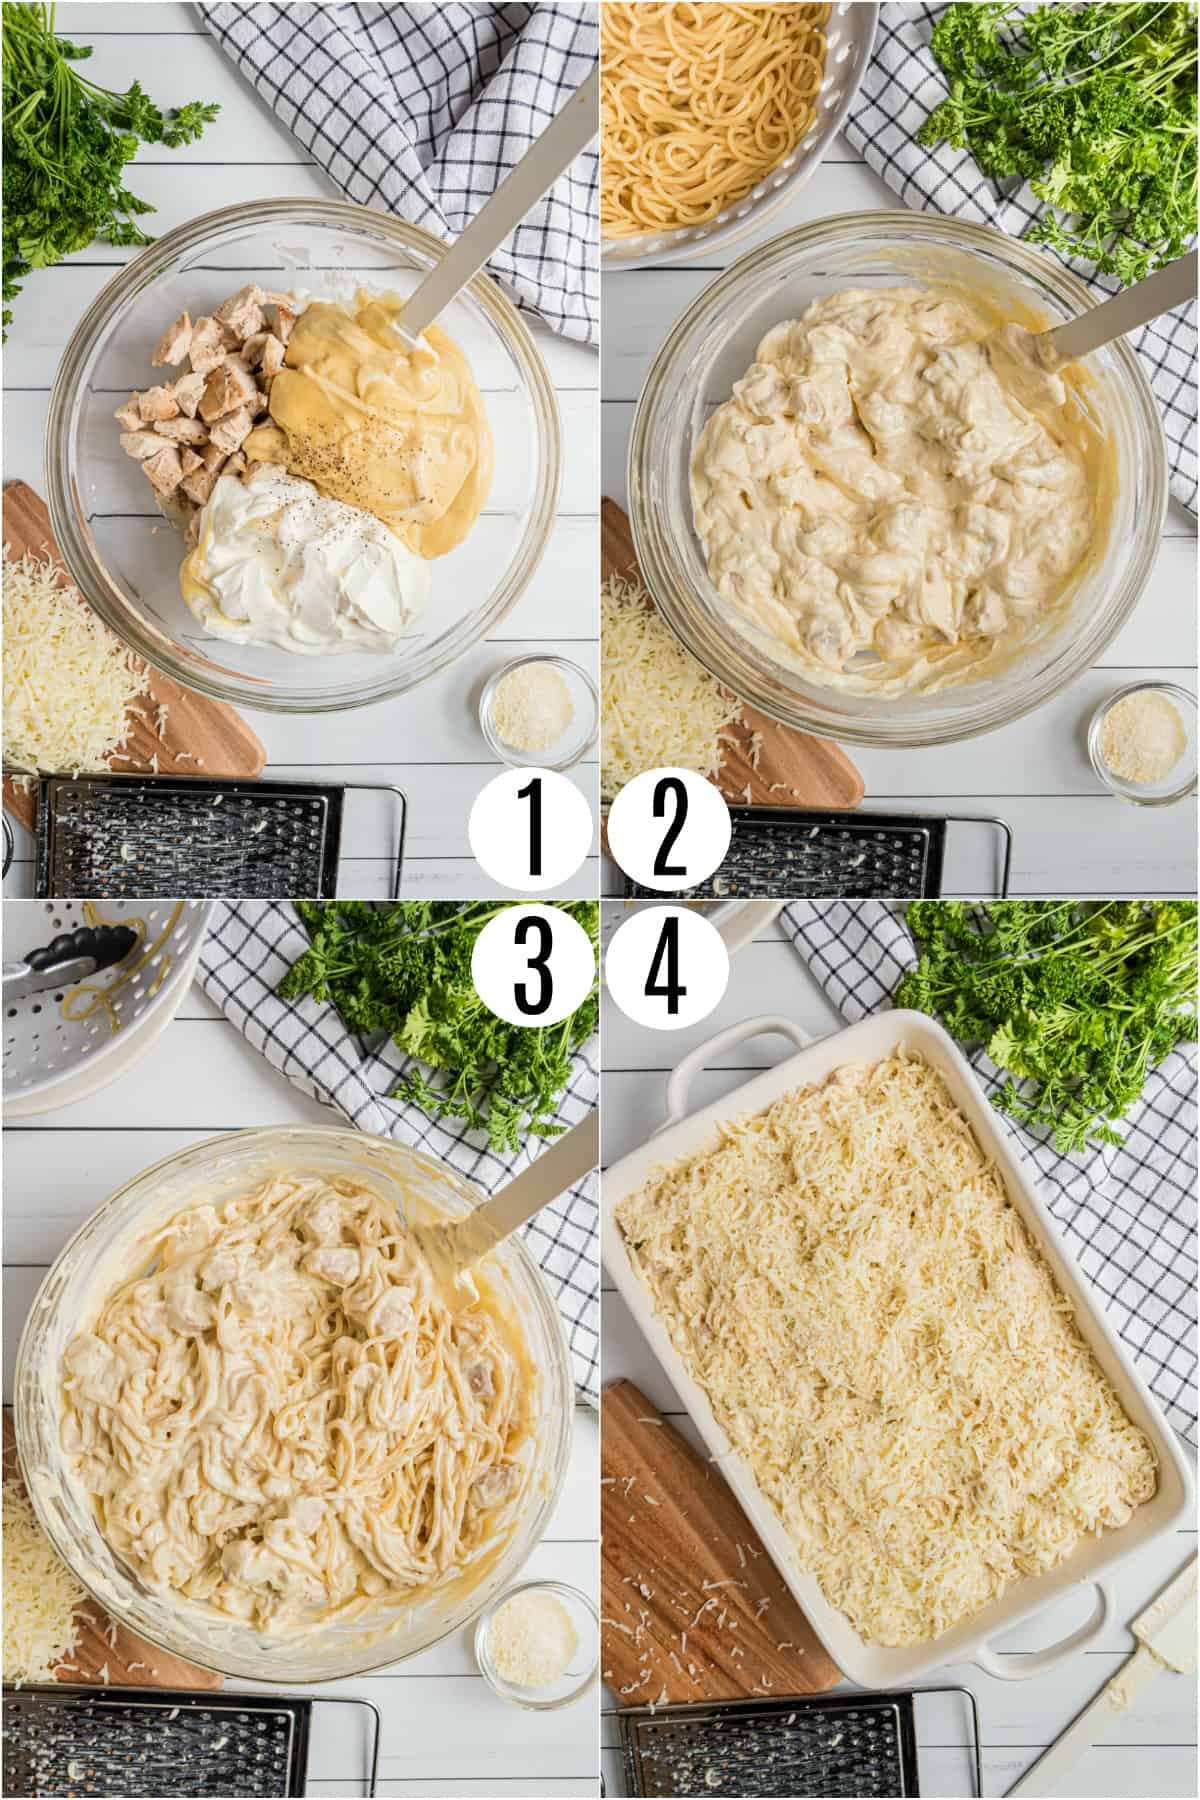 Step by step photos showing how to make Chicken Tetrazzini.